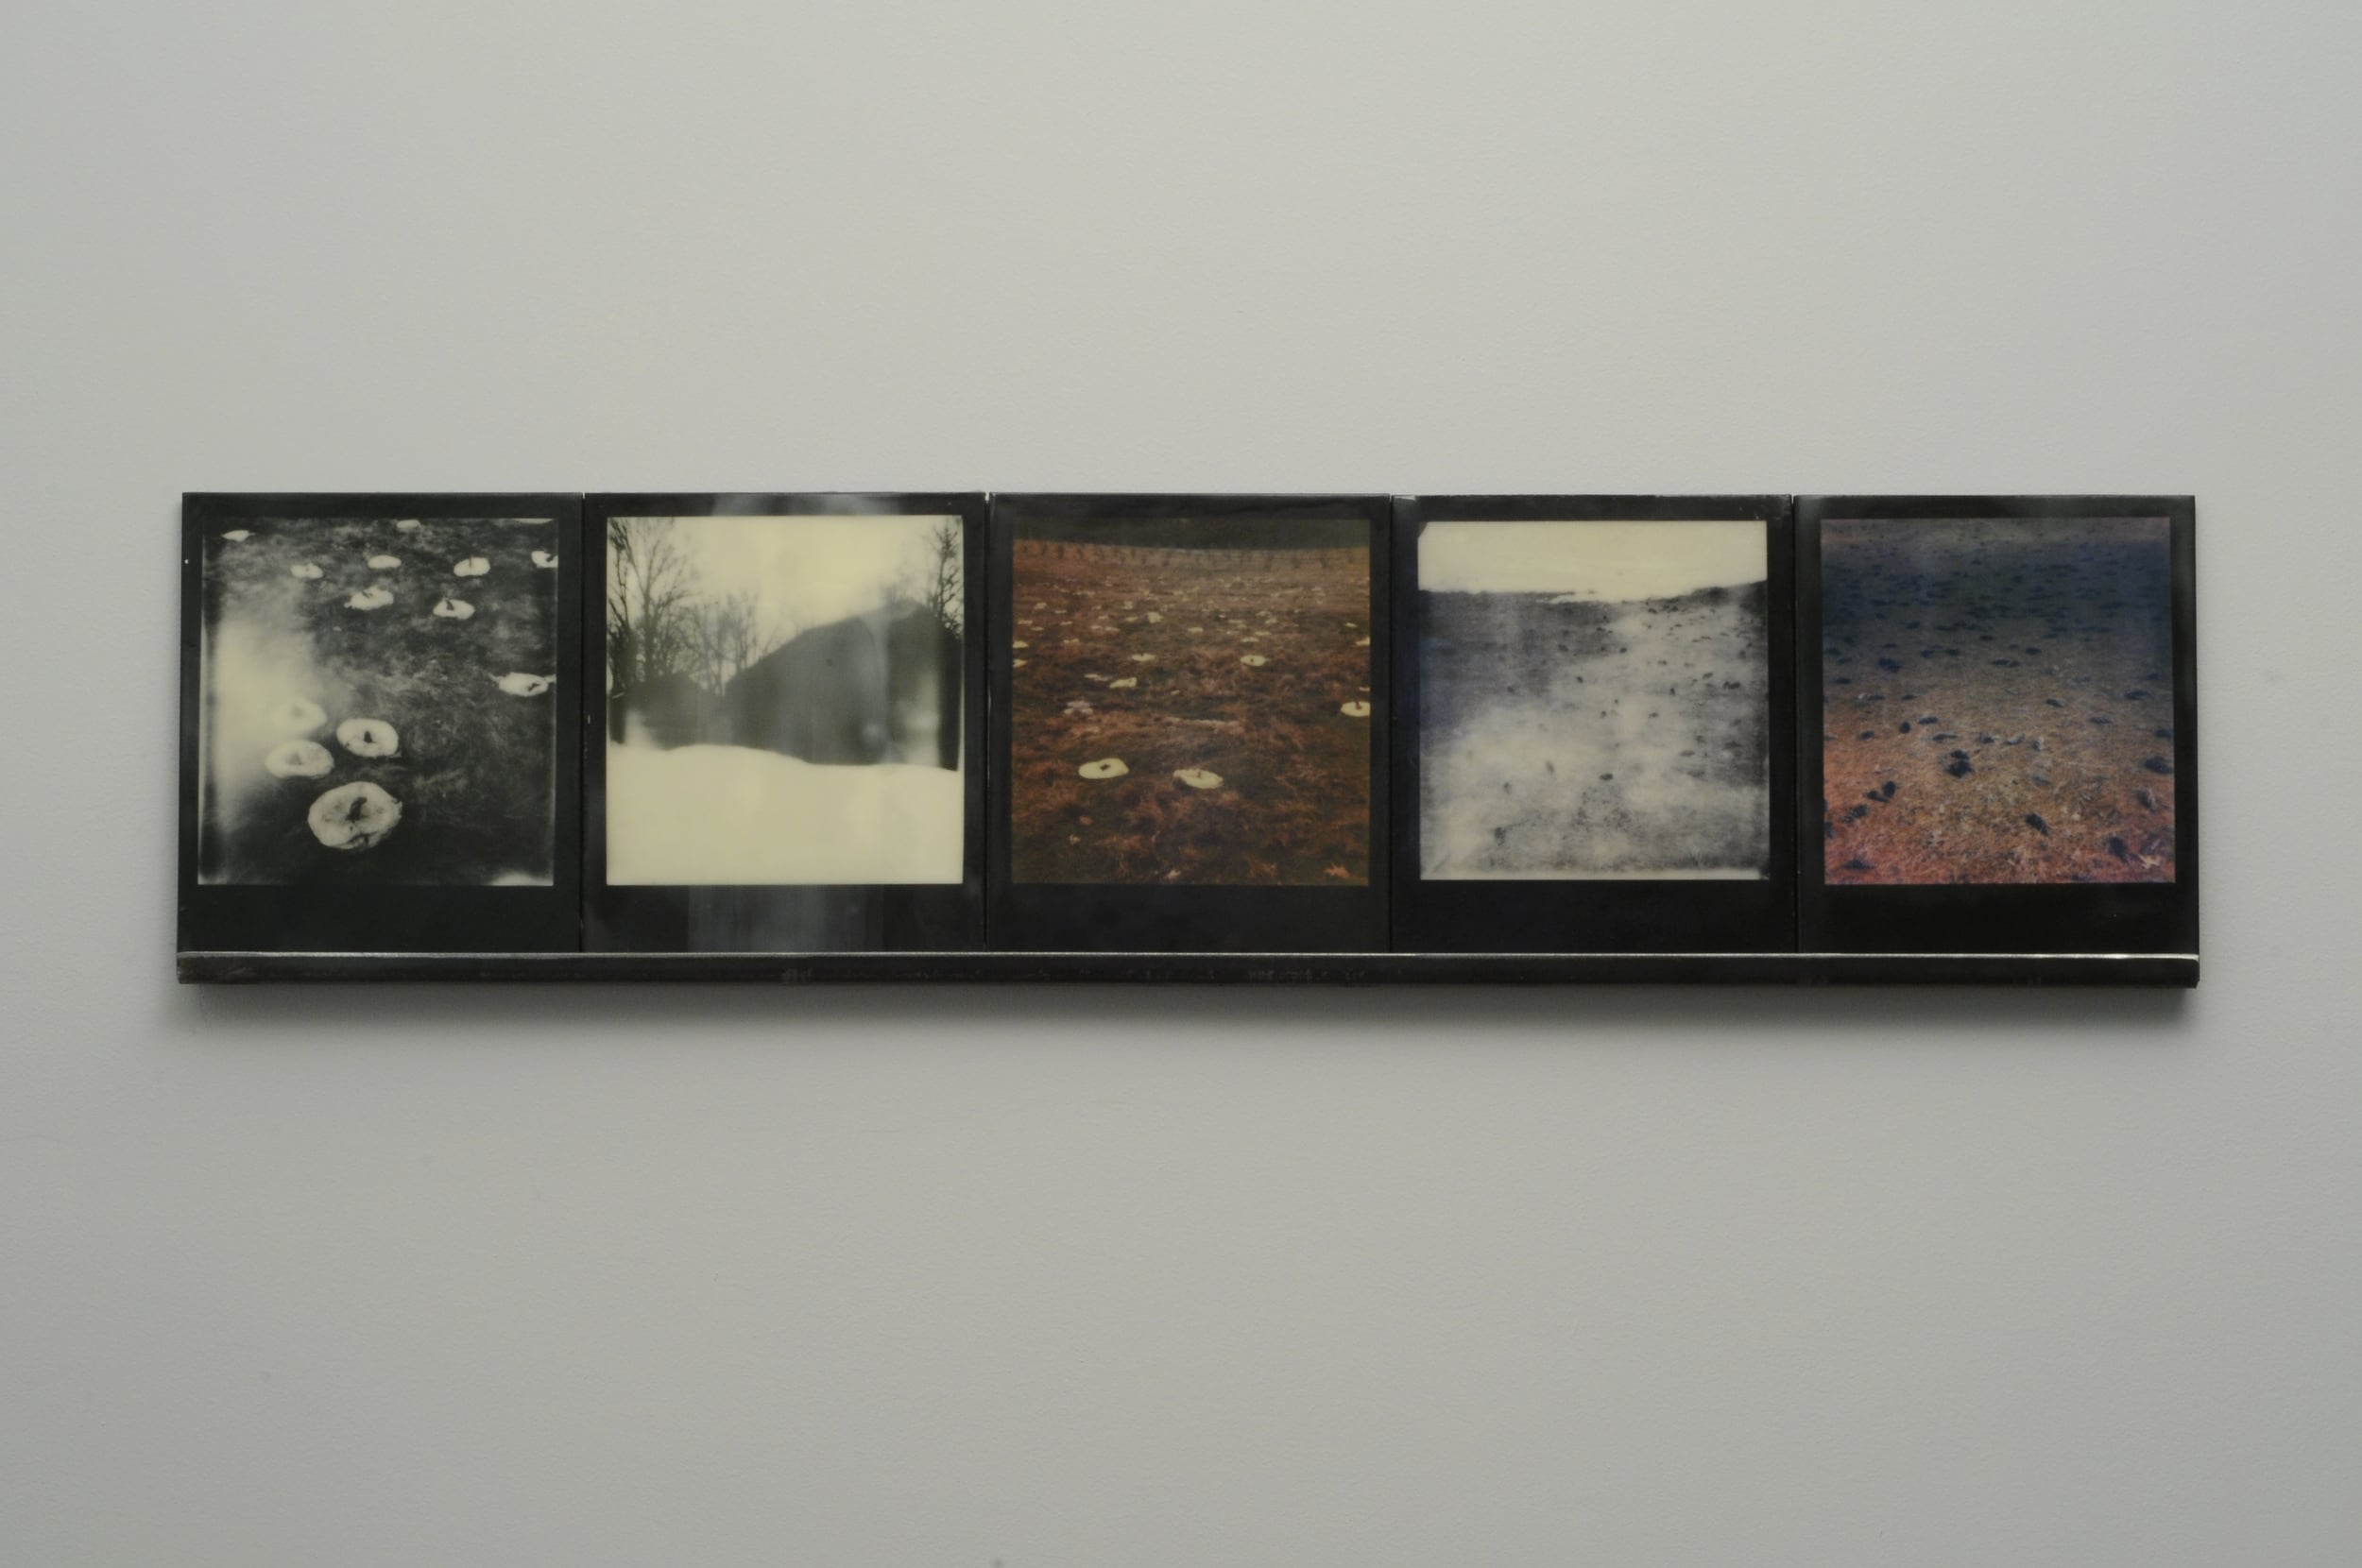 """Winter Spill  , 2015, pigment prints on cotton and panel with encaustic medium and steel shelf, 8.5"""" x 35.25"""" variable edition of 2 and 1 artist proof"""